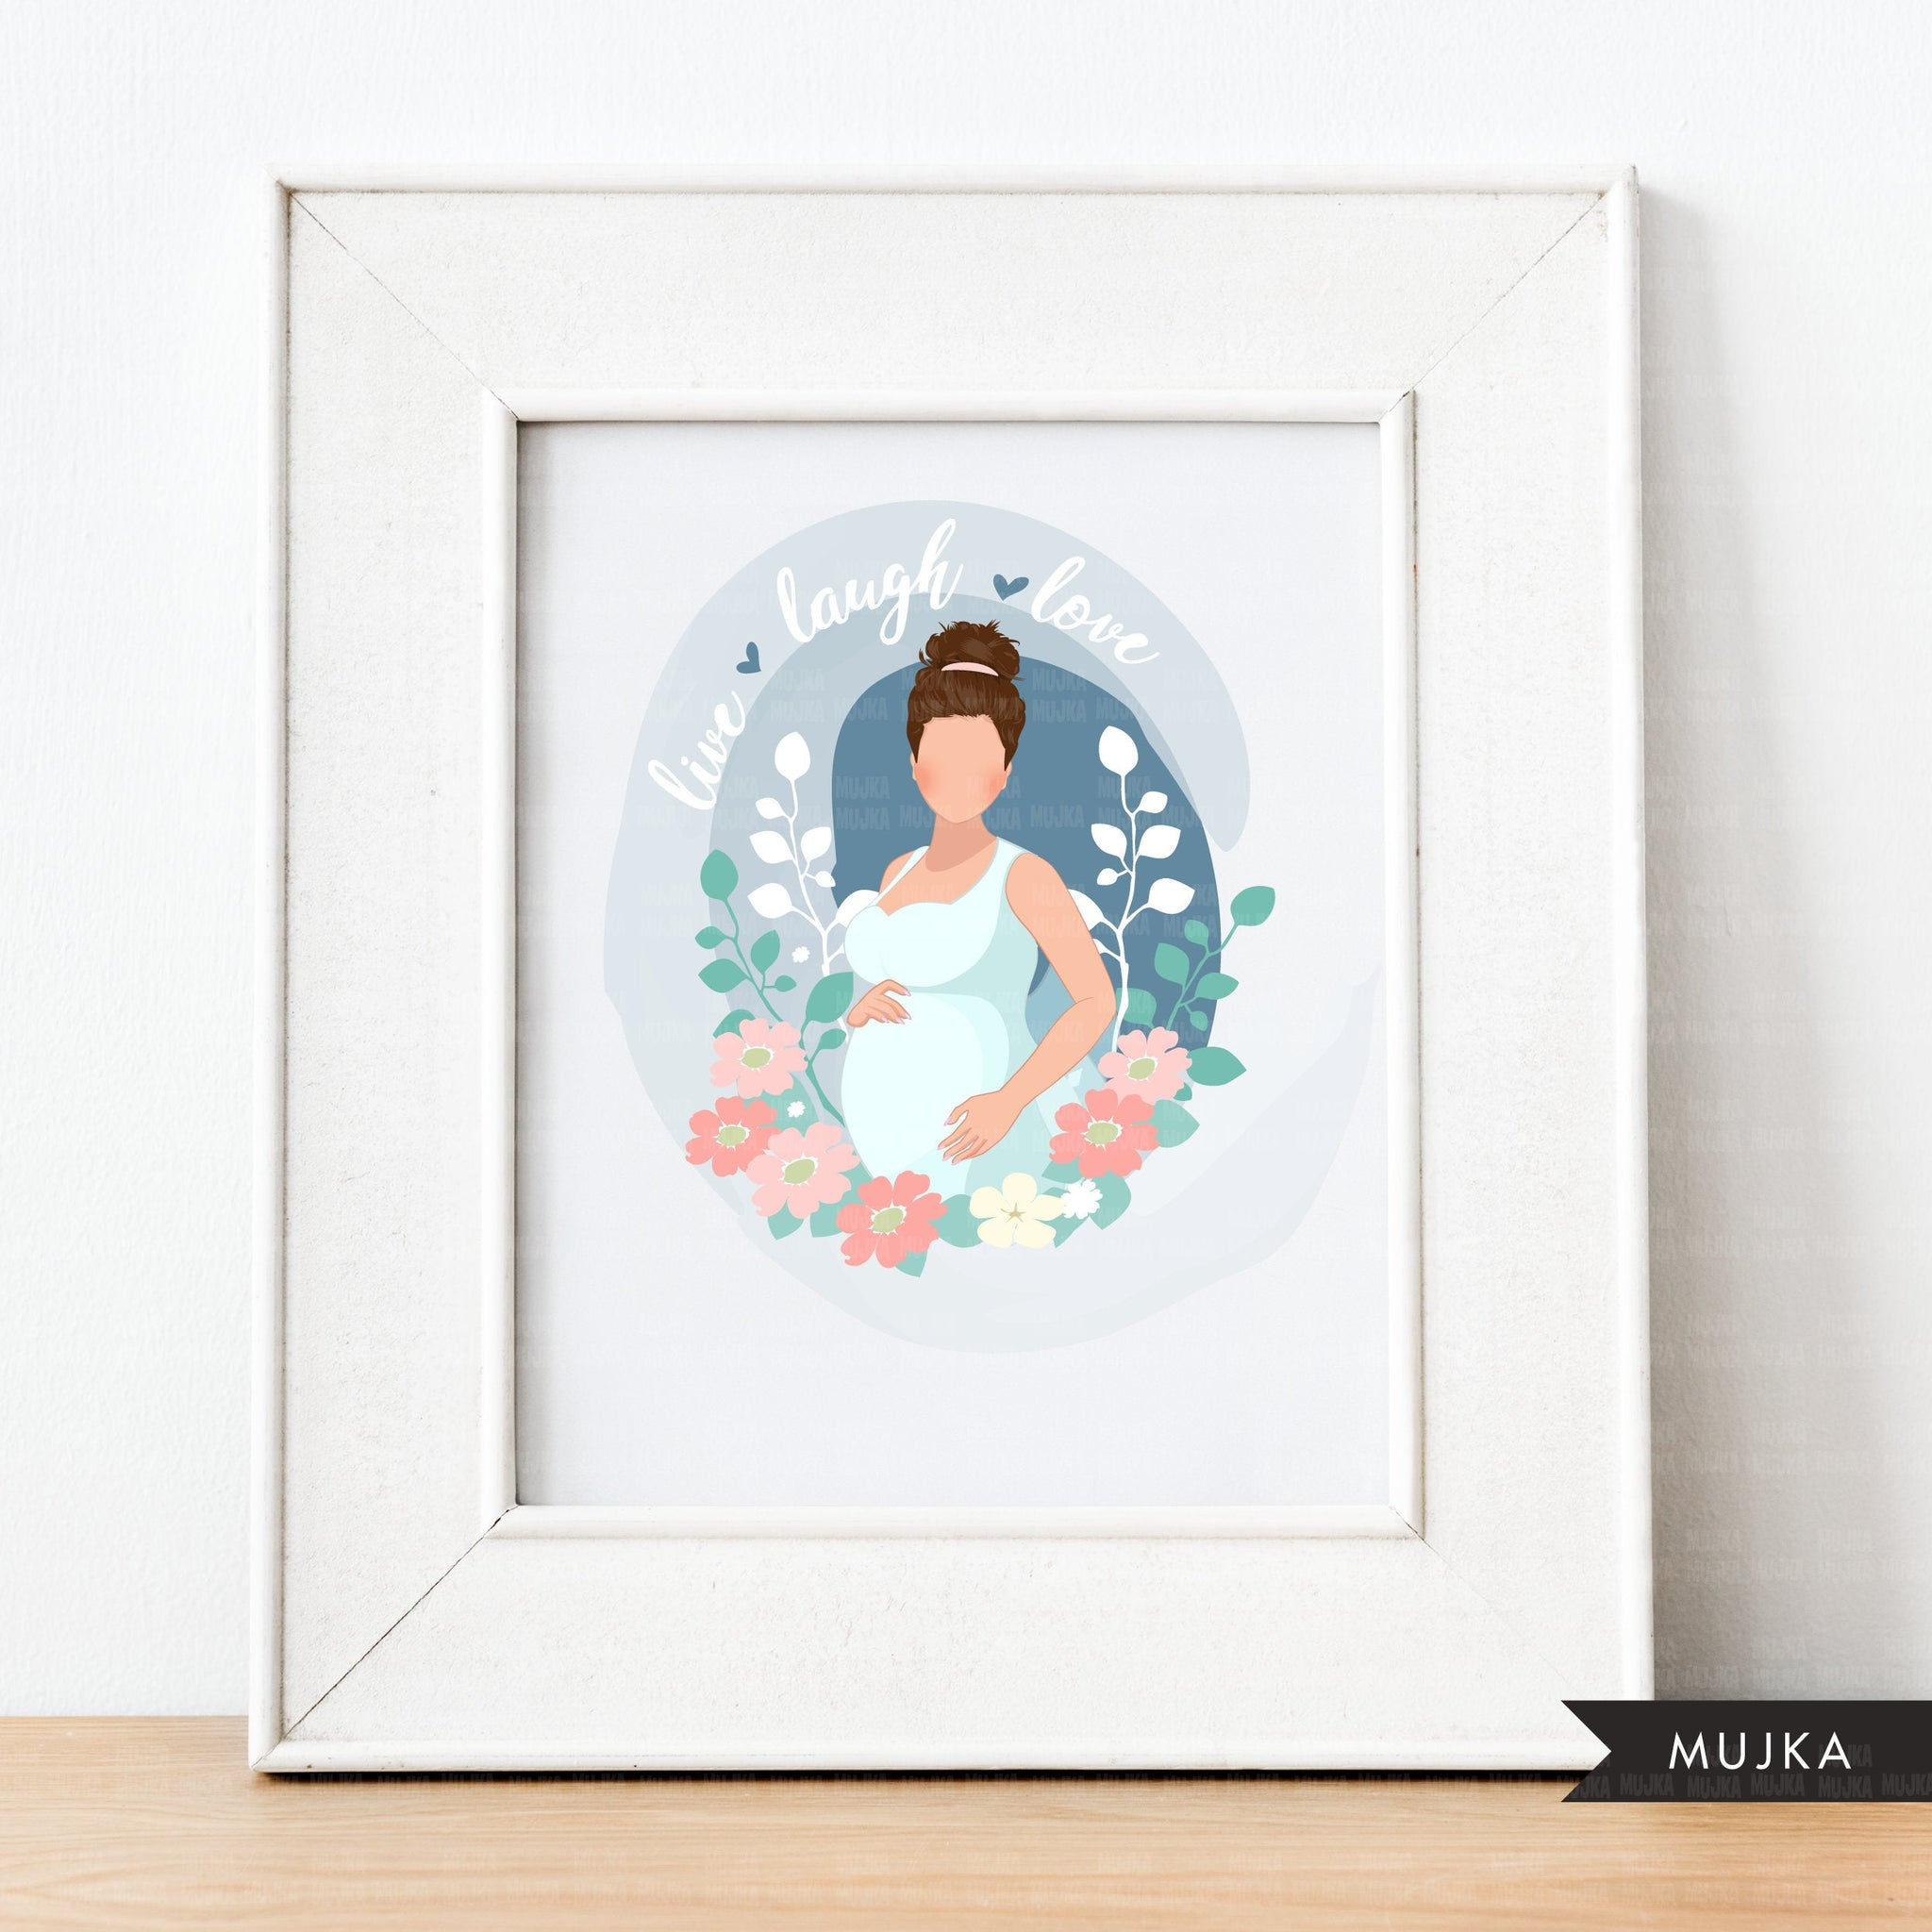 Mothers Day clipart, mother's day sublimation designs digital download, pregnancy, baby shower favors, wall art, pregnant brunette woman png